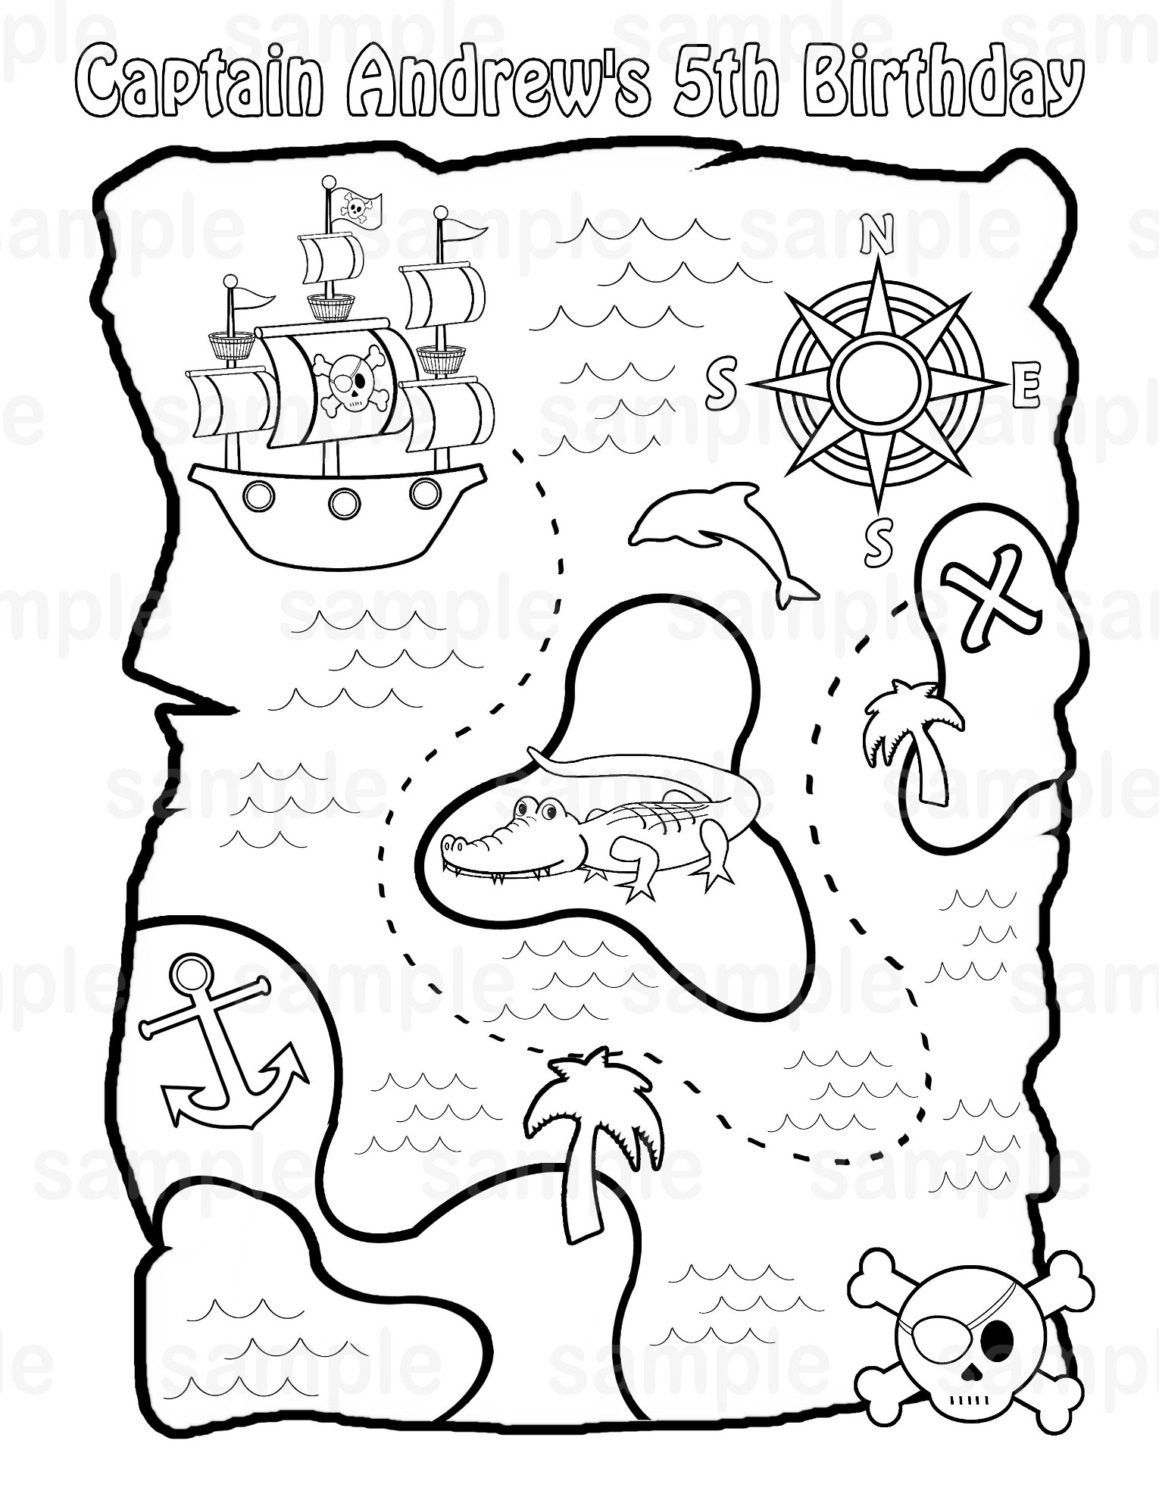 Printable Pirate Treasure Map For Kids ️Adult Coloring